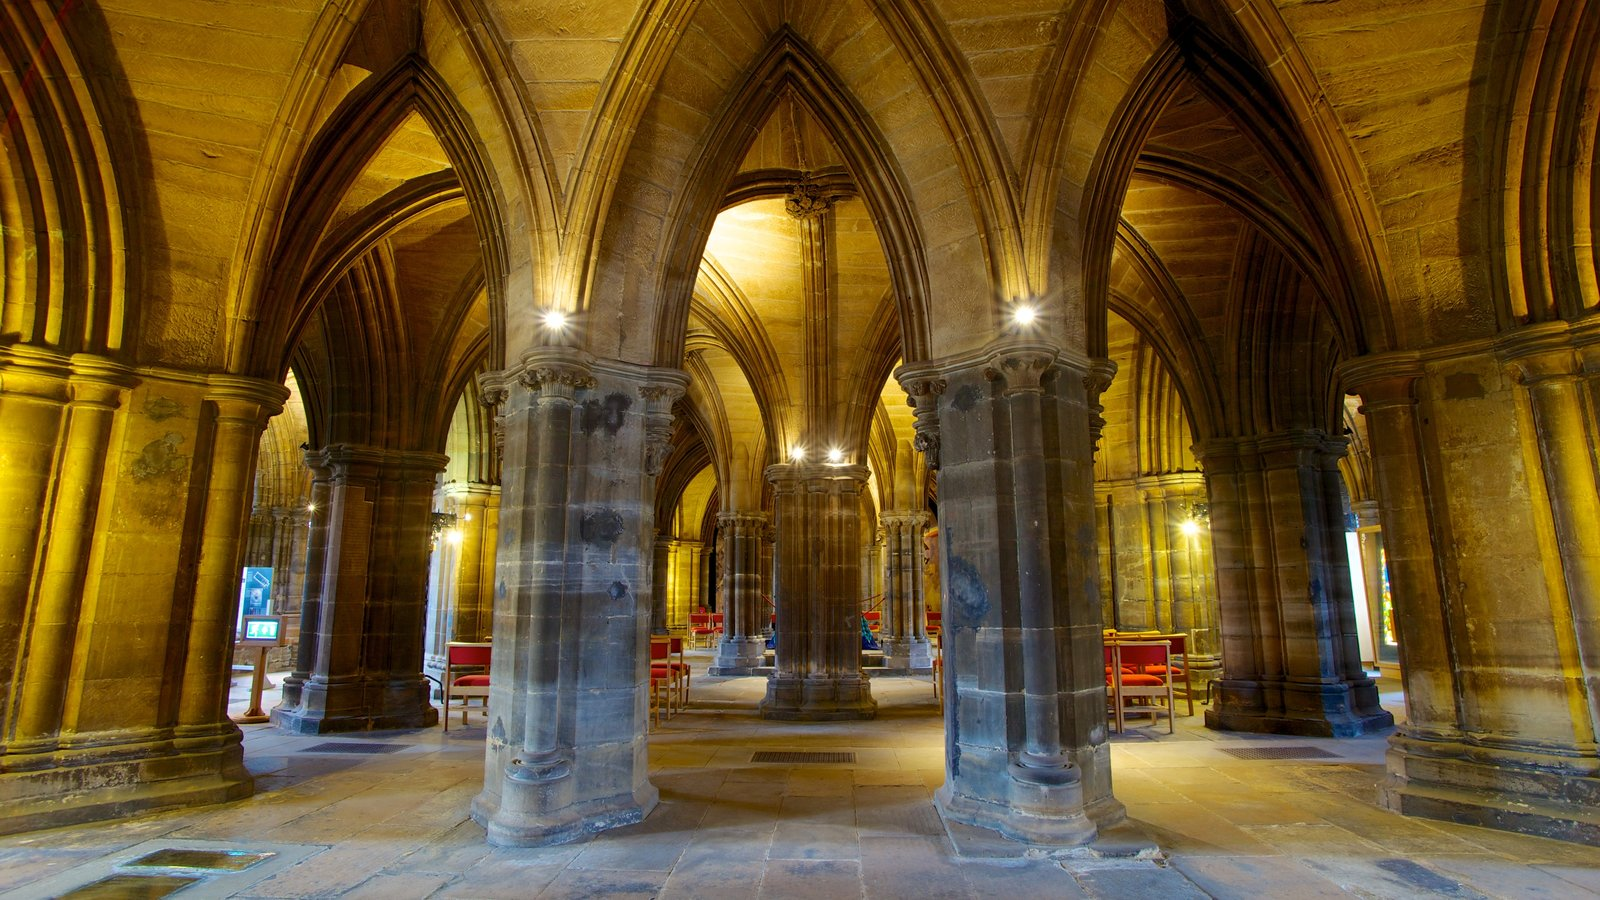 Glasgow Cathedral featuring a church or cathedral, heritage architecture and religious aspects